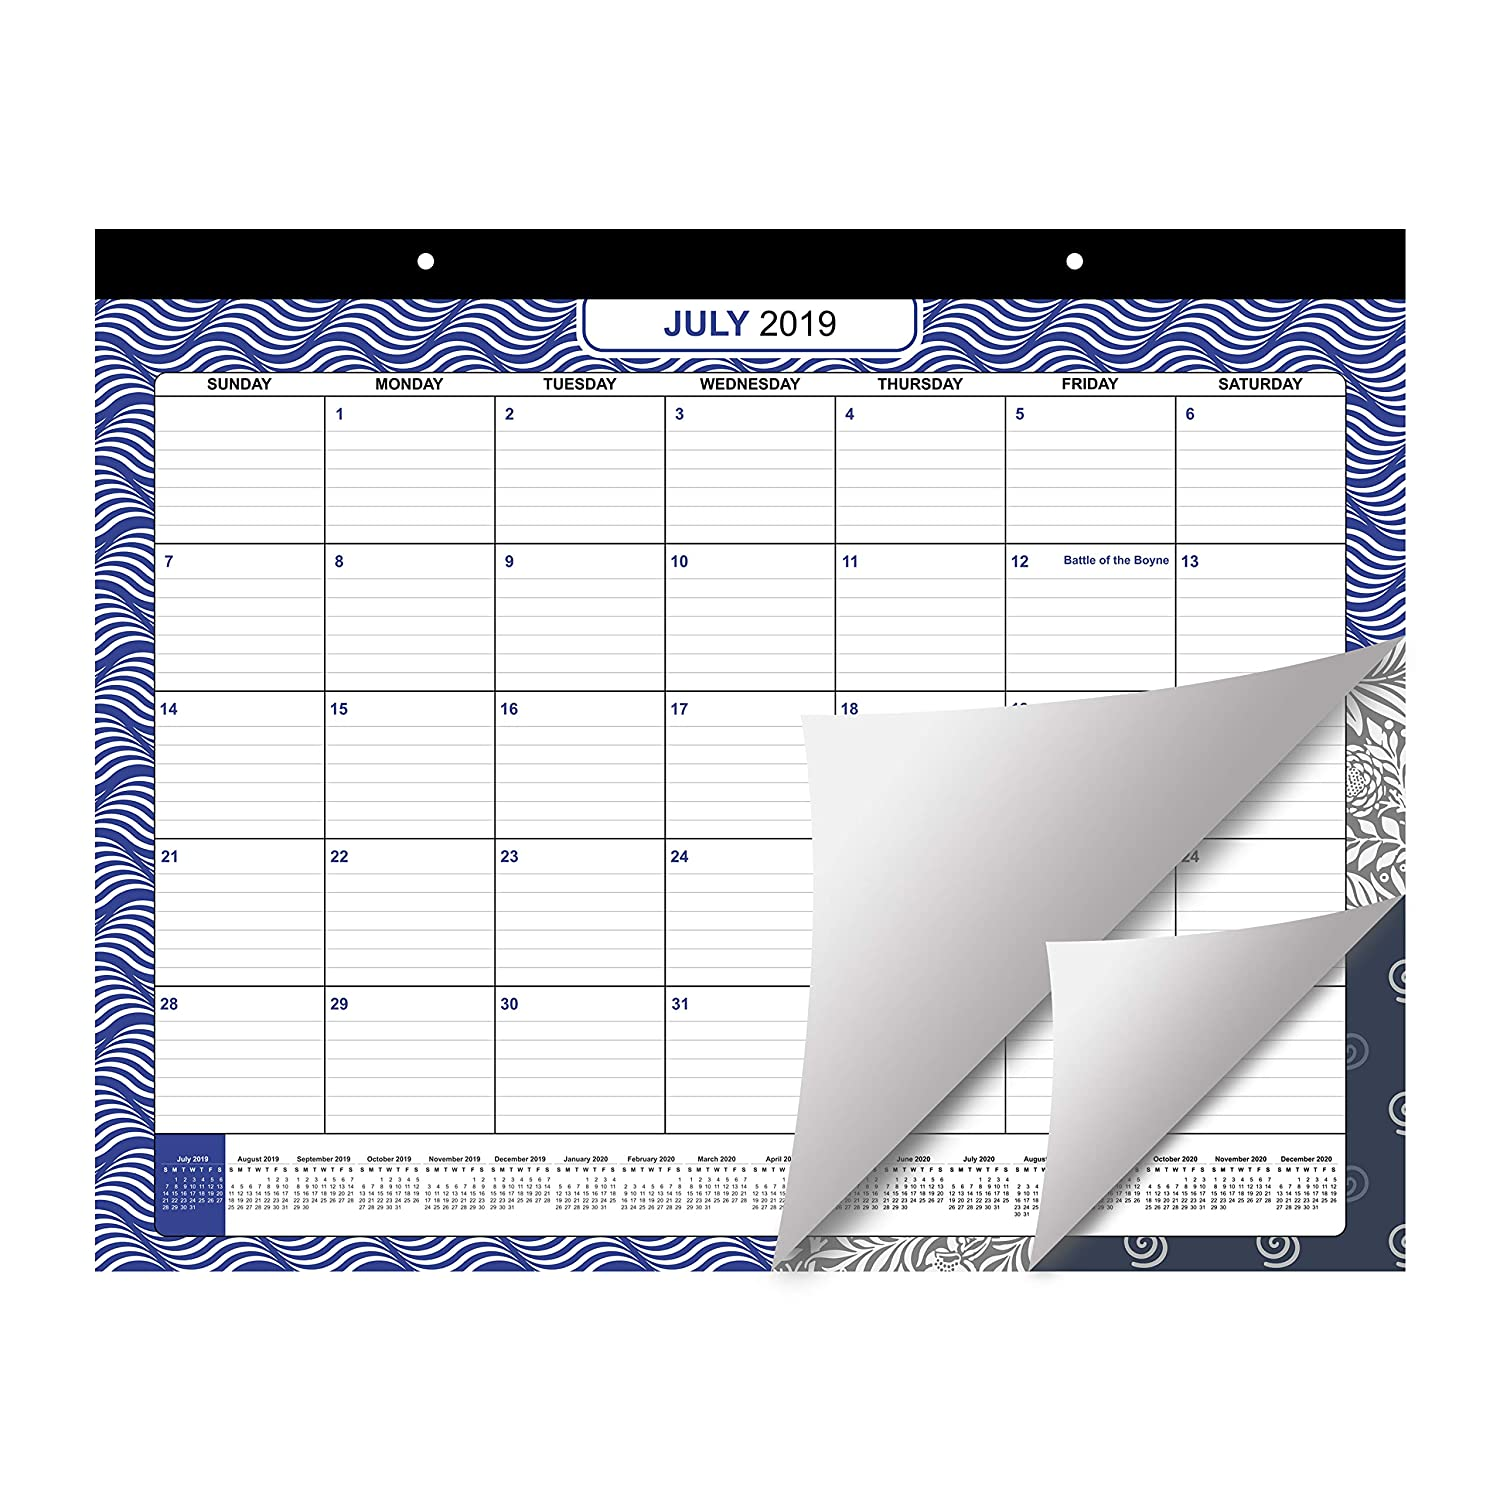 Desk Calendar 2019//2020 by Belle Vous December 2020 Printed Monthly Academic Desk Pad for School and Office Supplies Large Wall and Desk Monthly Agenda Planner Pad from July 2019